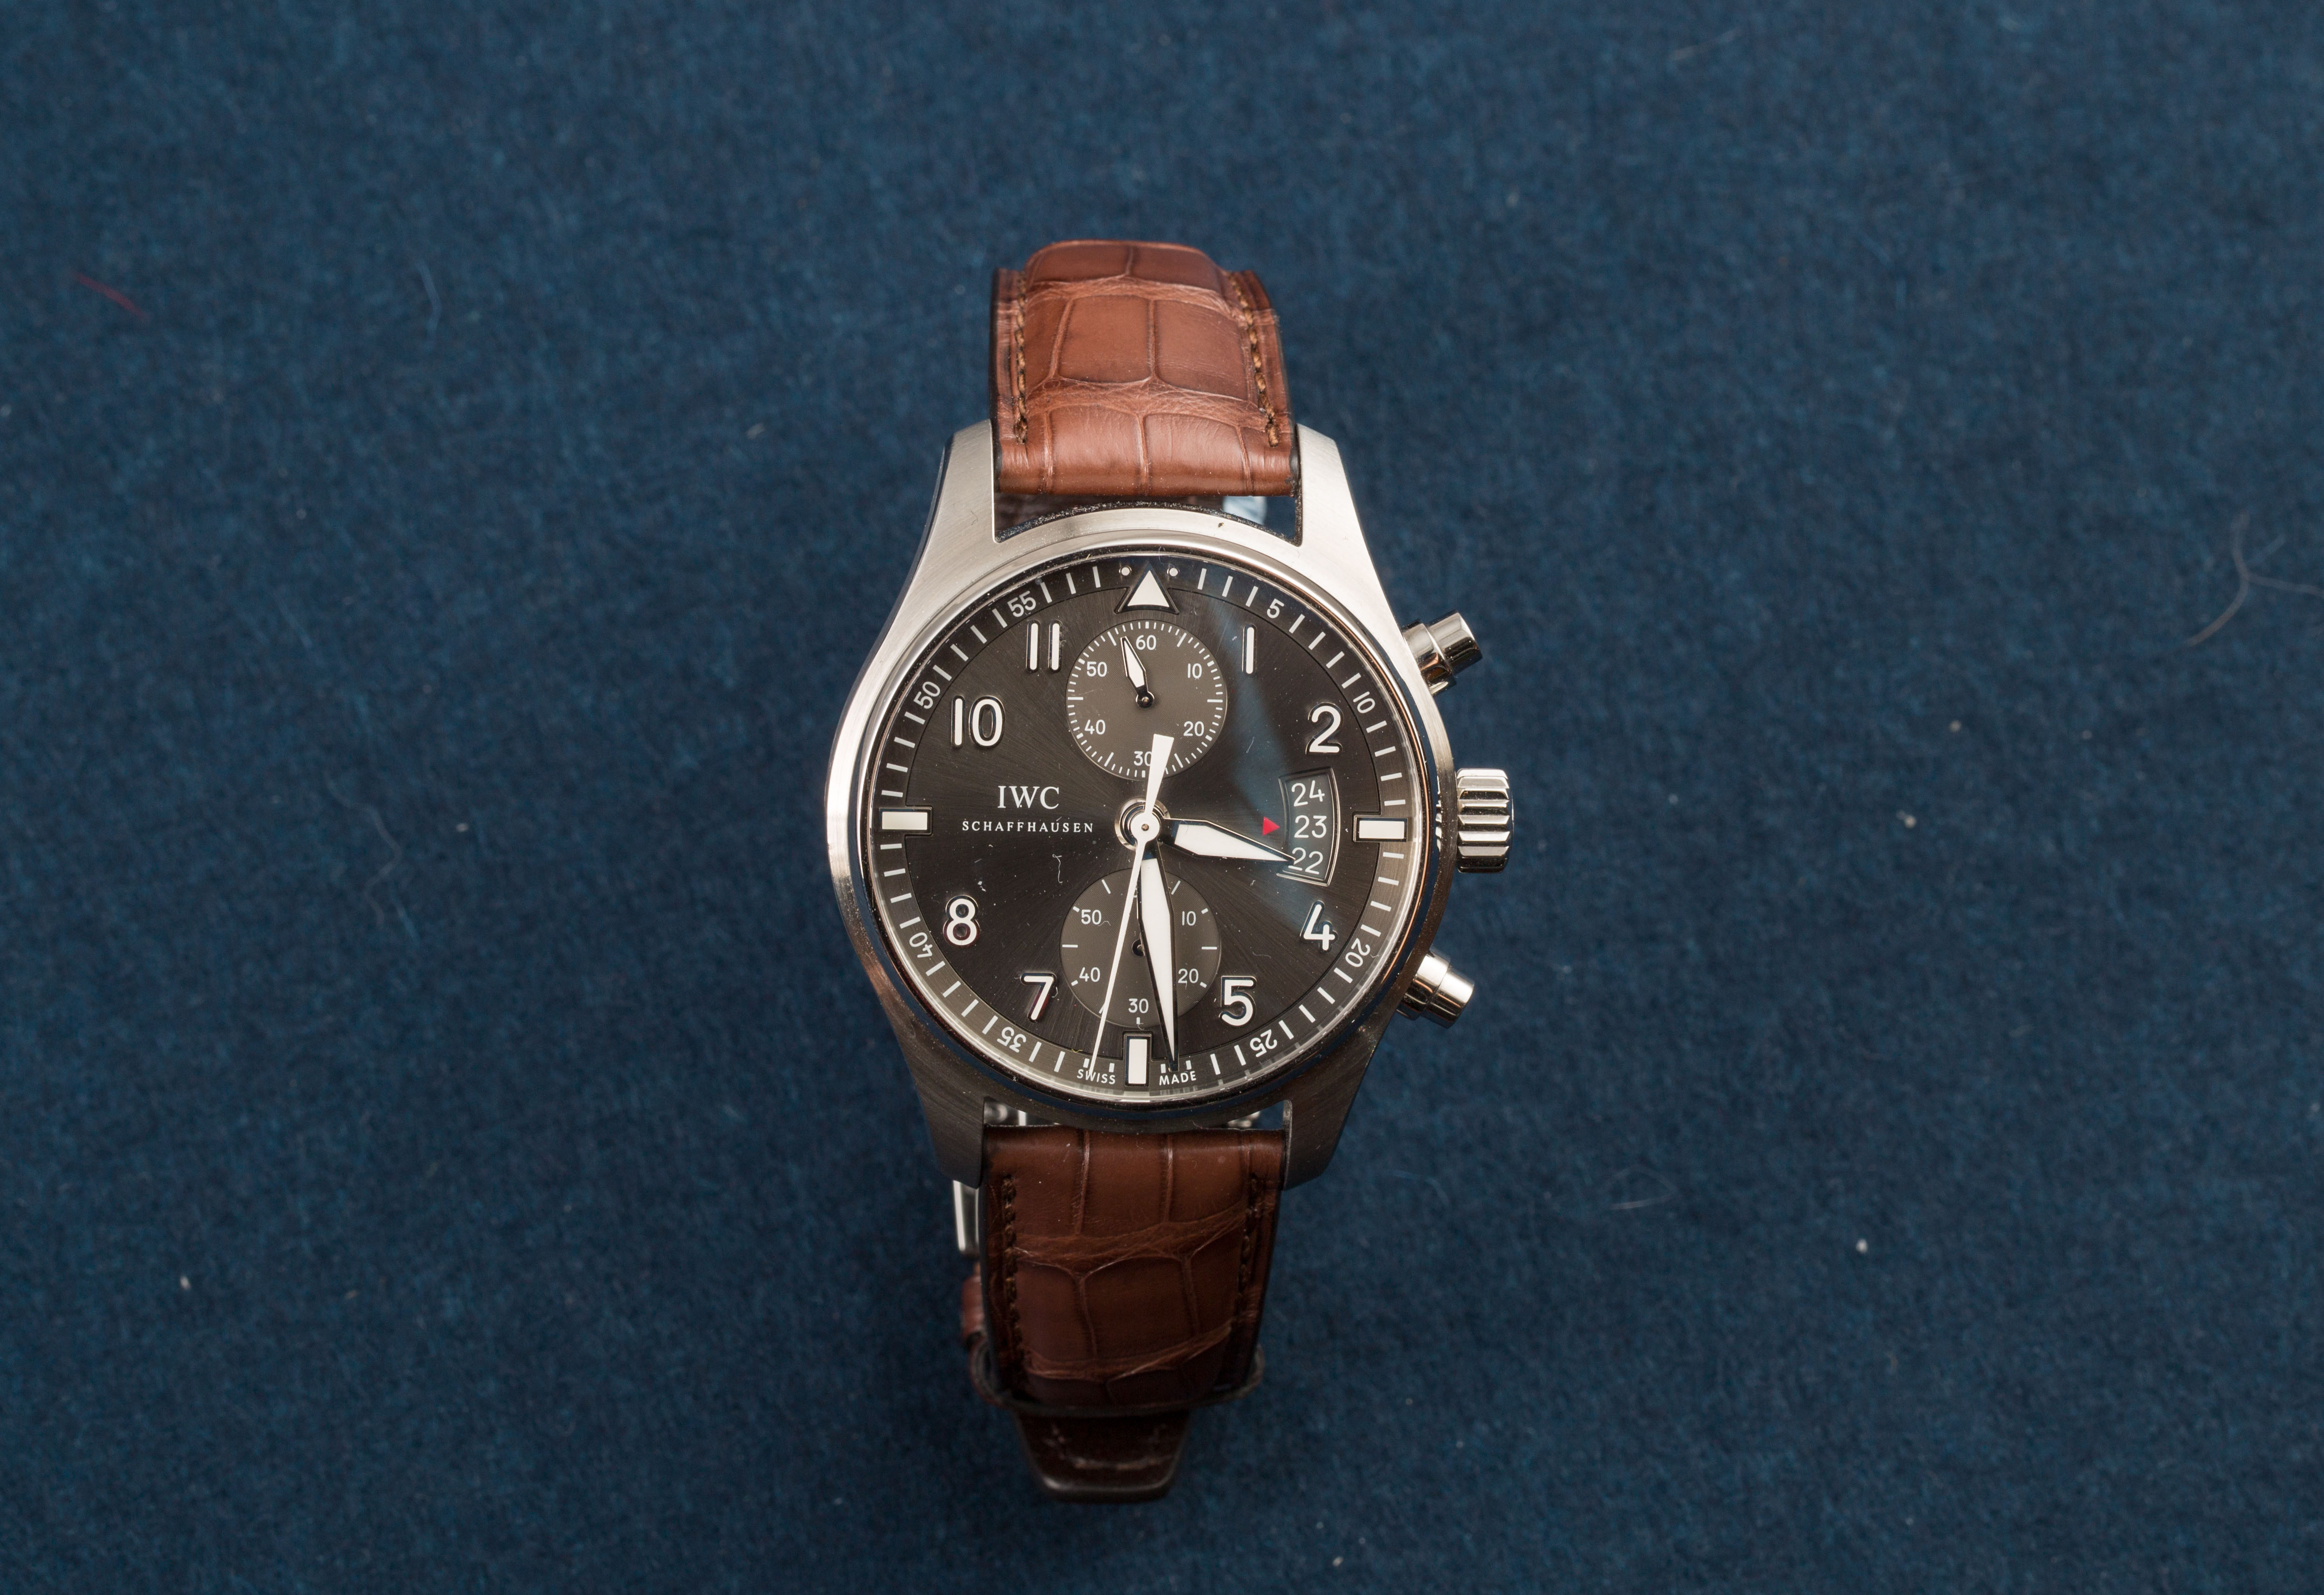 Lot 8 - IWC Pilot Spitfire Chronograph New Old Stock Ref IW387804